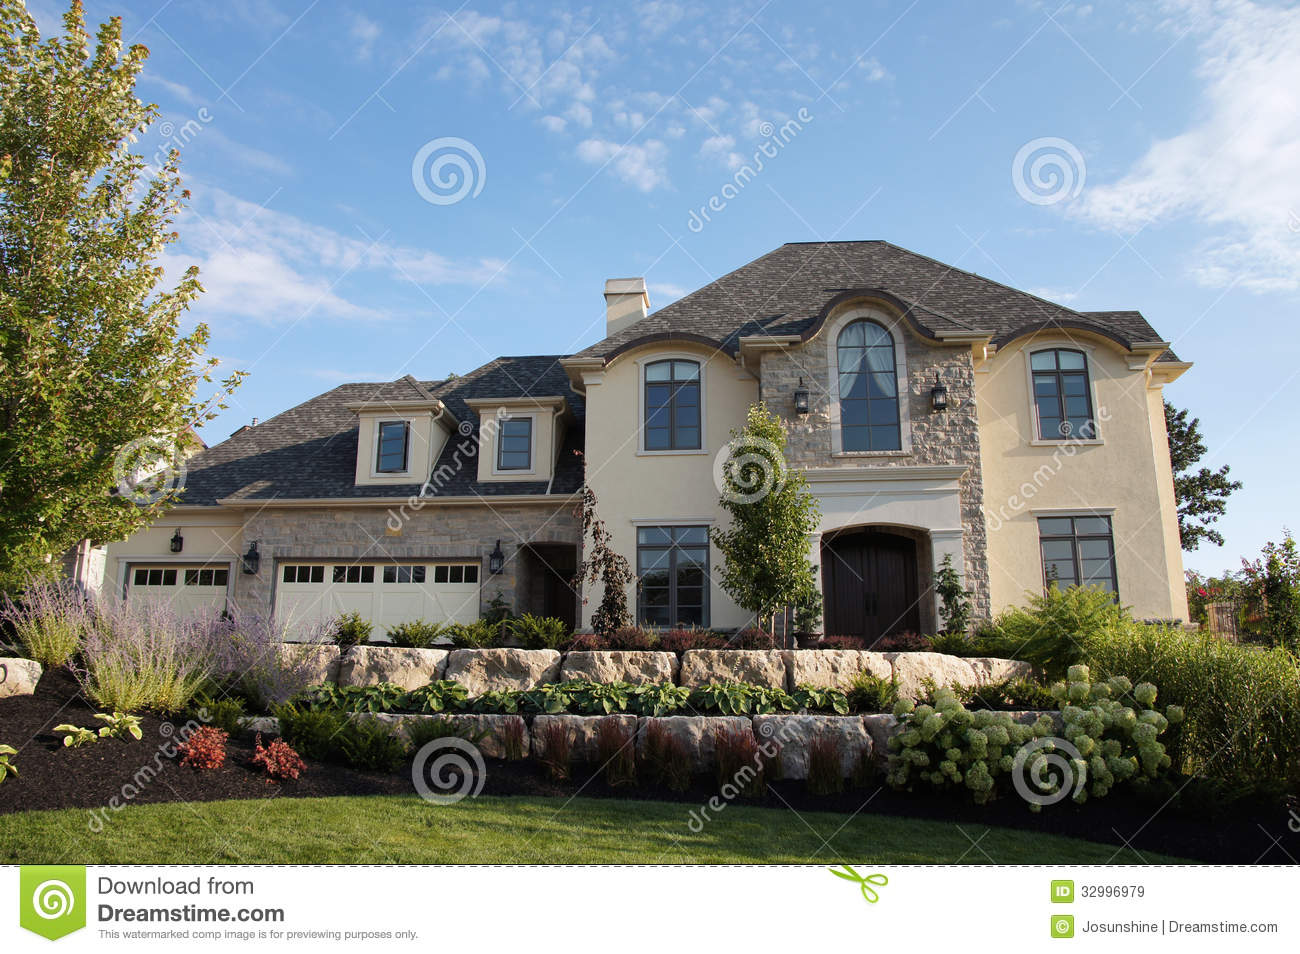 Royalty Free Stock Images Luxury Stucco House Stone Beautiful Pretty Landscaping Gardens Image32996979 on classic american homes